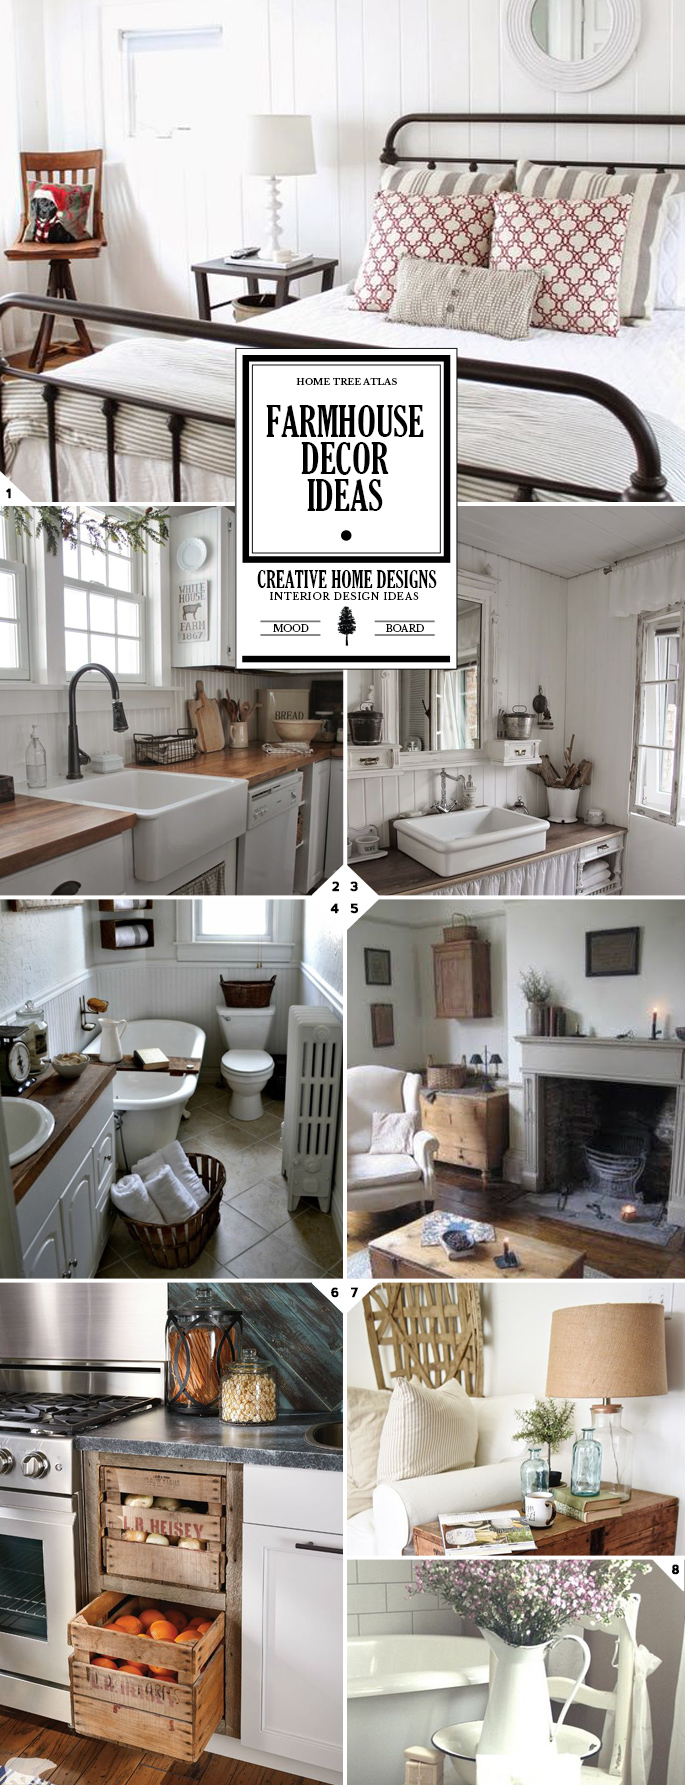 Vintage and rustic farmhouse decor ideas design guide for Home decor ideas